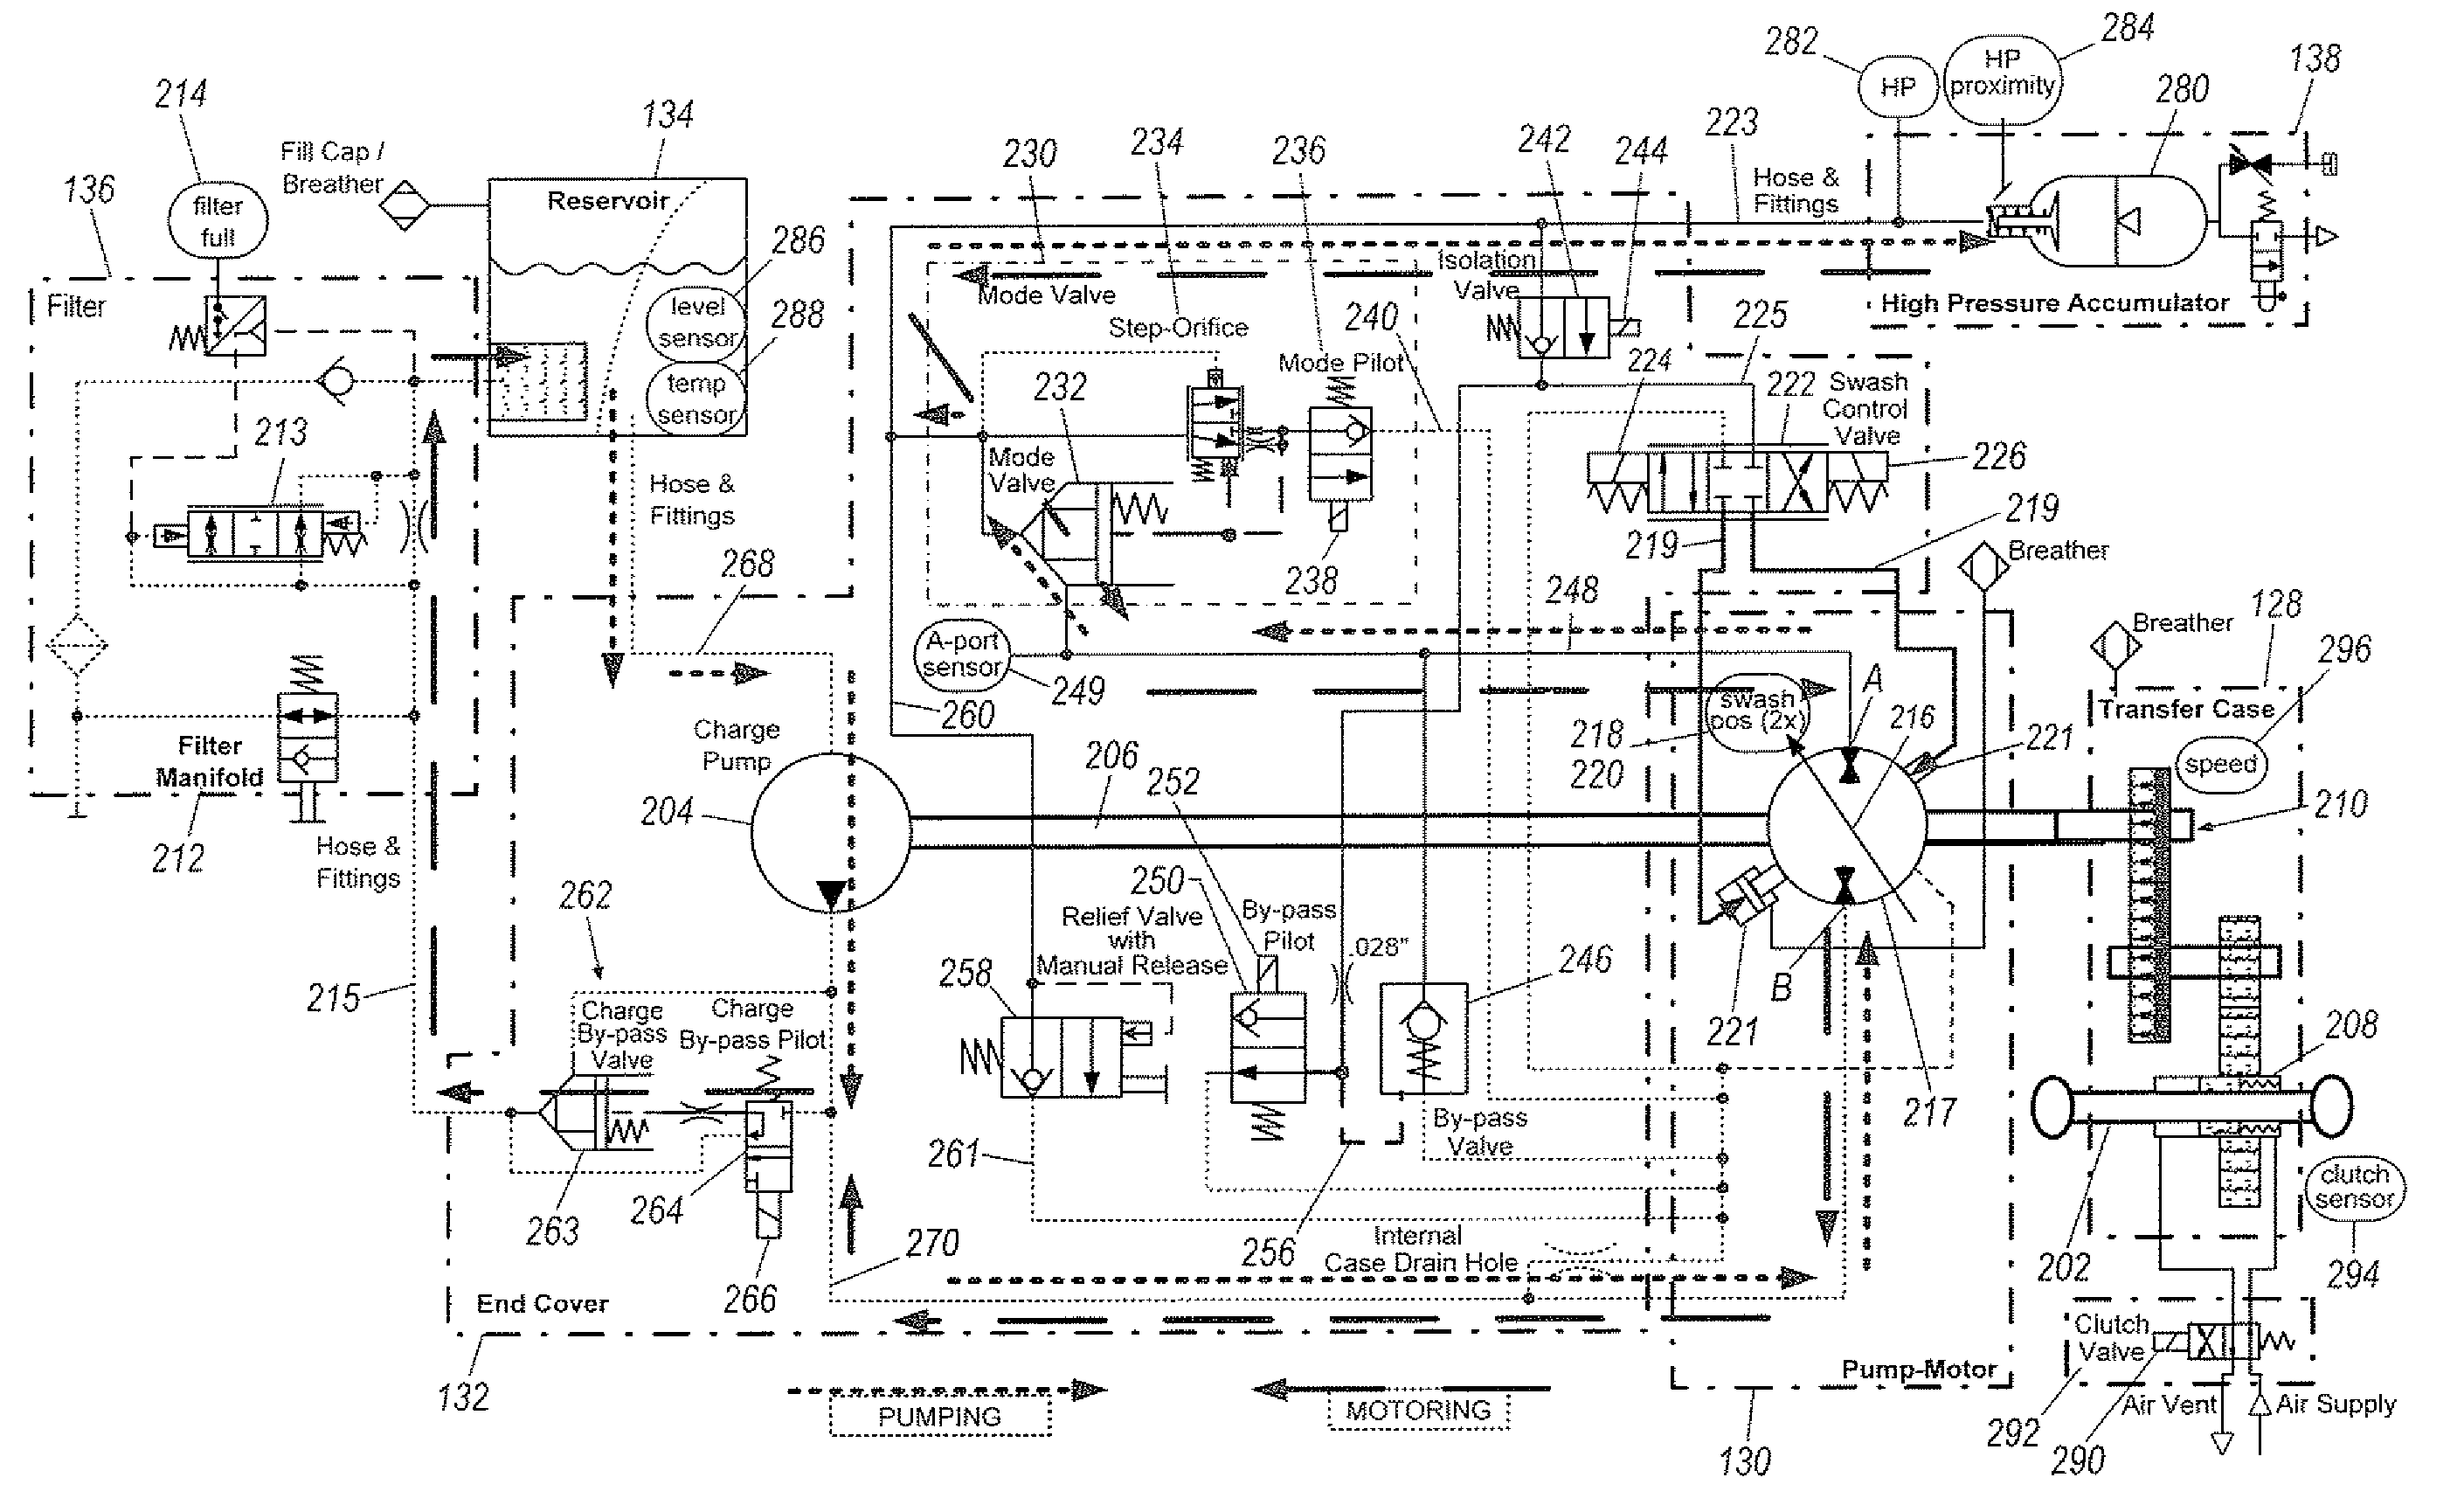 Engine Diagram 1974 Vw Bus C er further Viewtopic in addition Chrysler Aspen 2006 2008 Fuse Box Diagram further Chevy Hhr Starter Wiring Diagram in addition Engine Diagram Pic2fly 2001 Kia Sportage. on alfa romeo wiring diagram